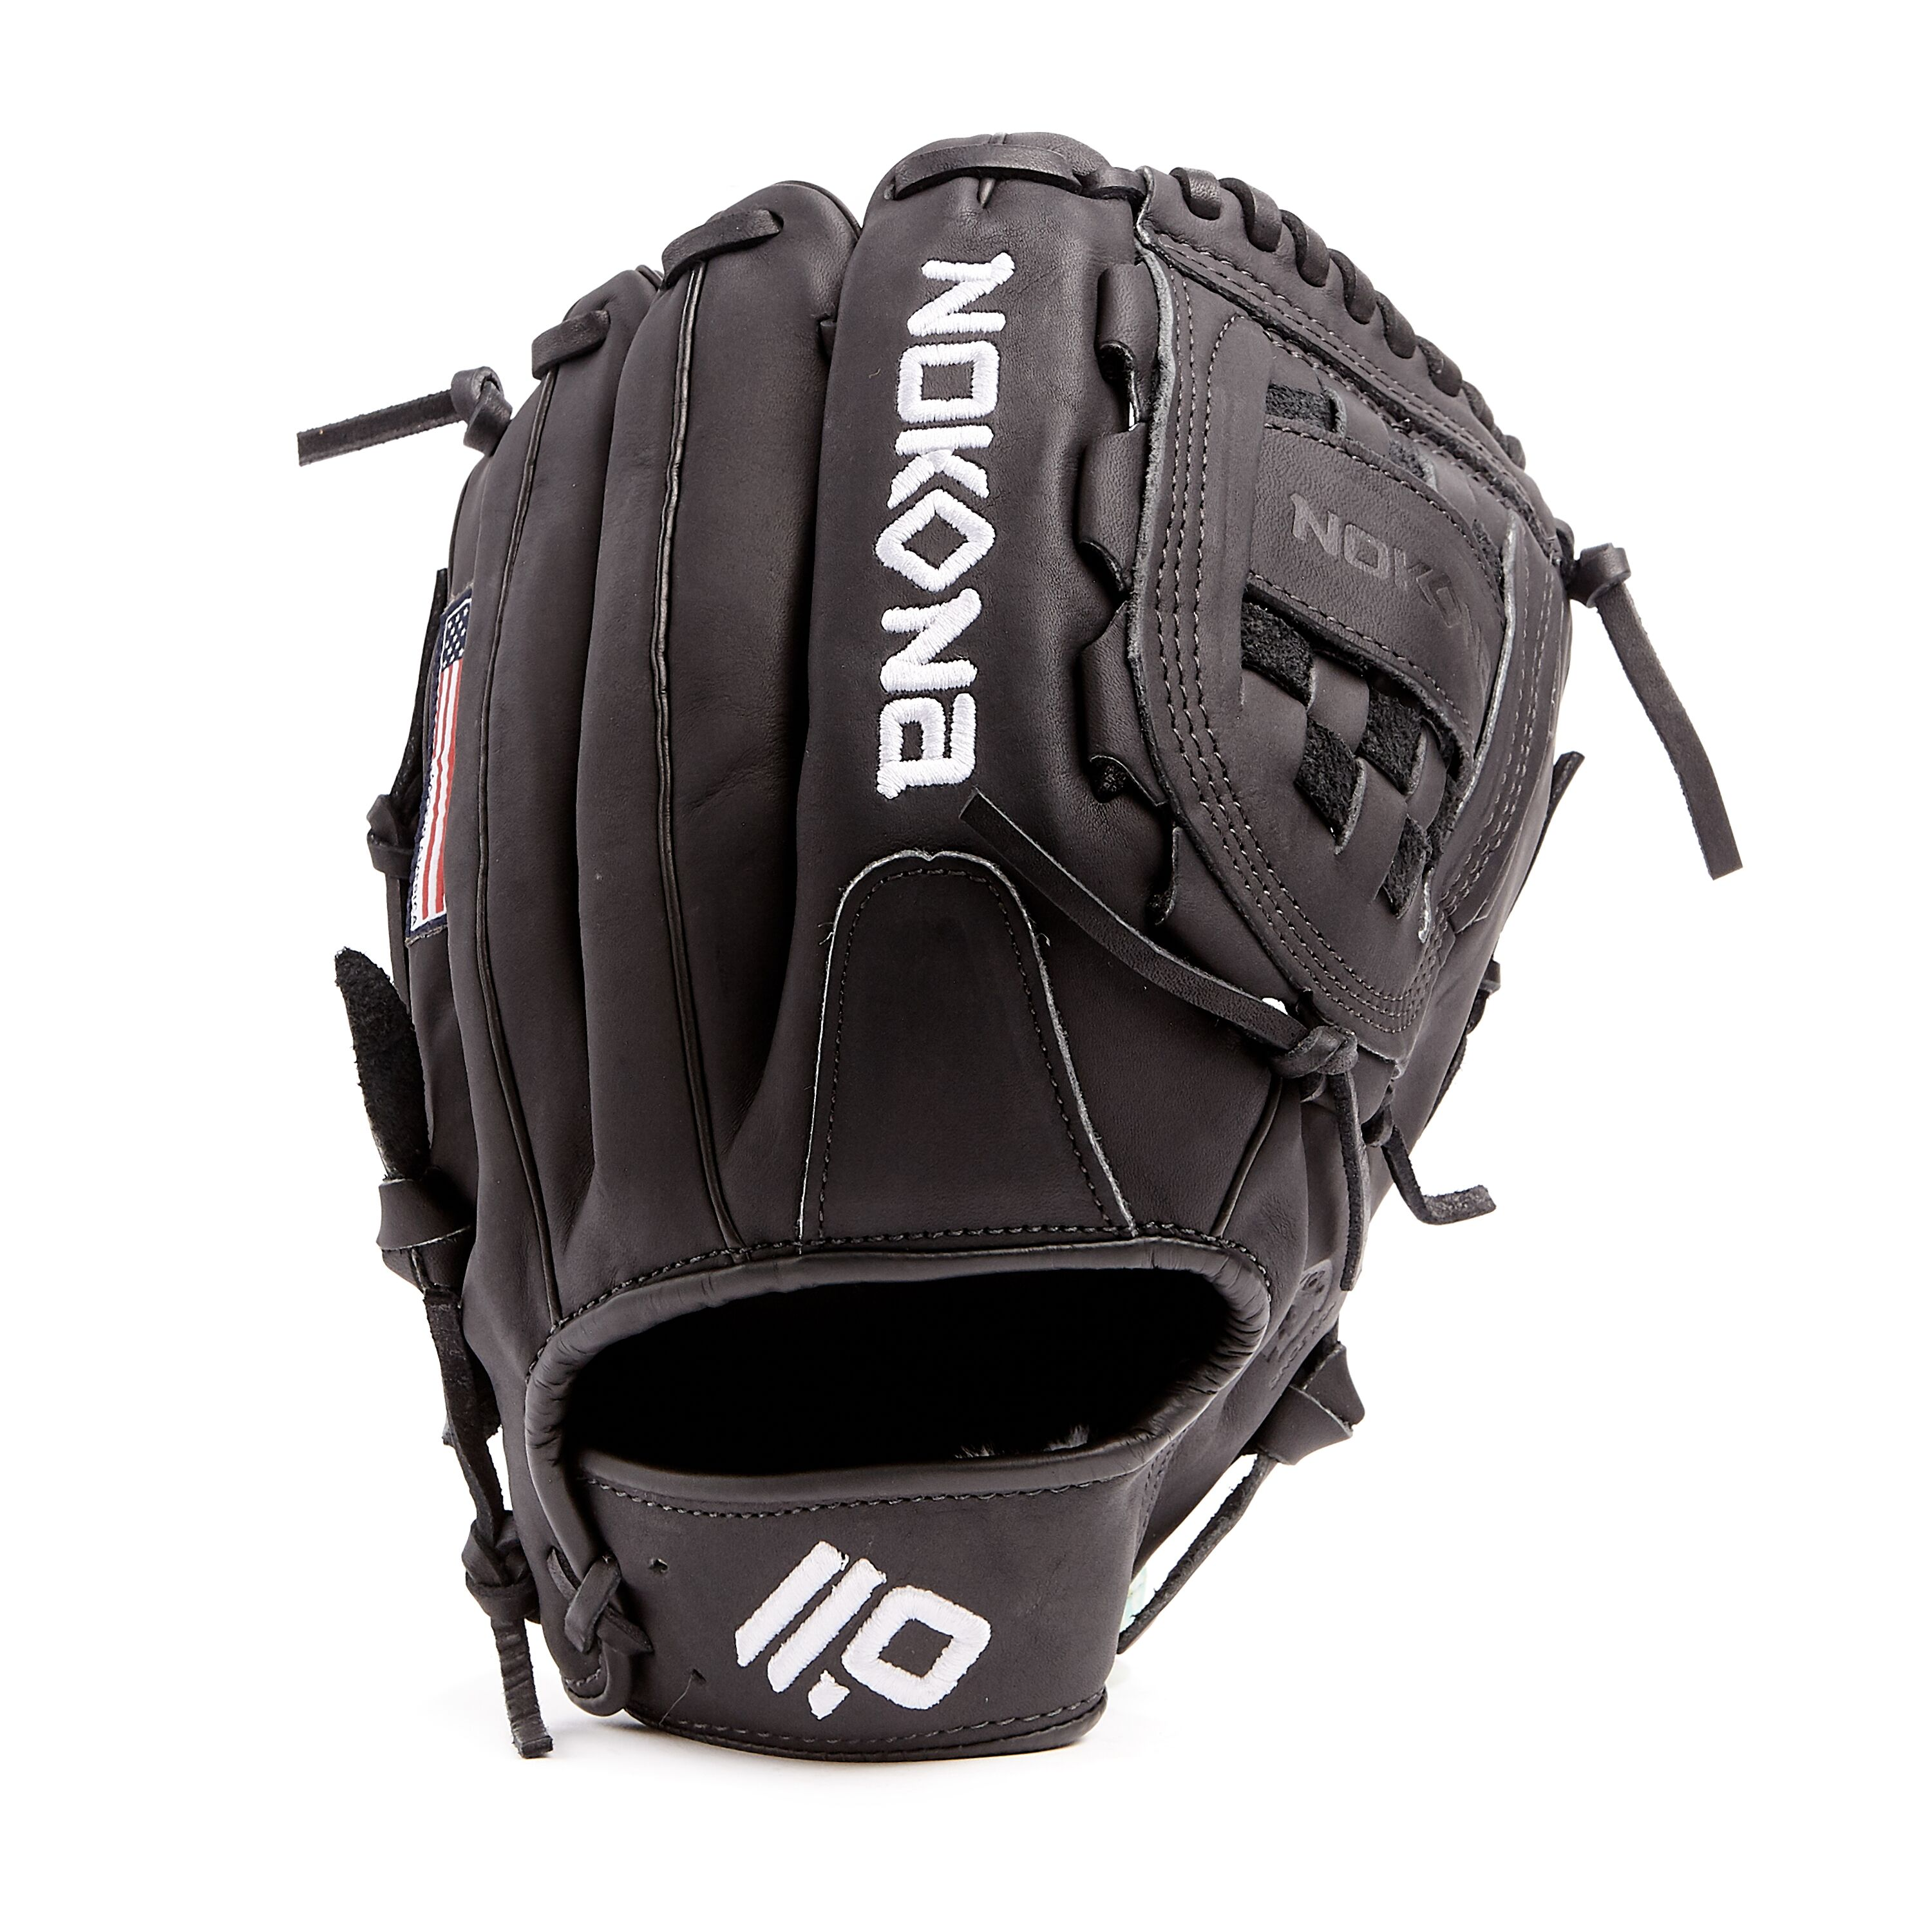 nokona-black-americankip-baseball-glove-12-right-hand-throw A-1200C-BK-RightHandThrow Nokona 808808894247 <span>The American Kip series made with the finest American steer hide